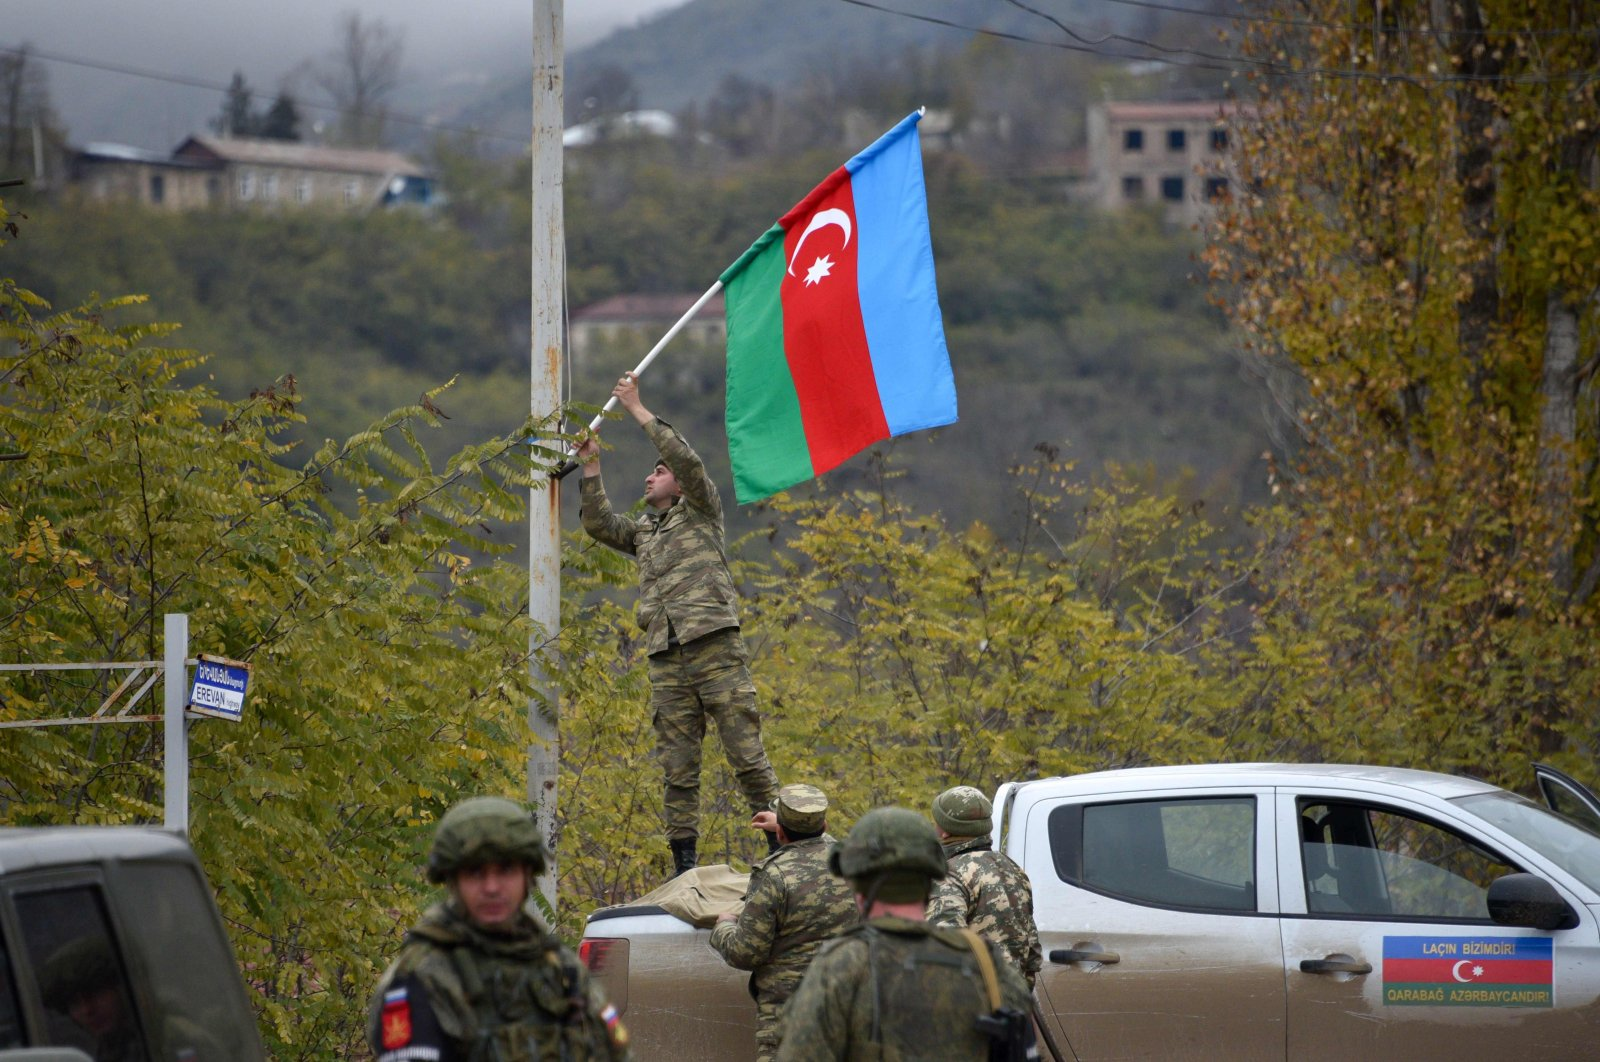 An Azerbaijani soldier fixes a national flag on a lamp post in the town of Lachin, Azerbaijan, Dec. 1, 2020. (AFP Photo)